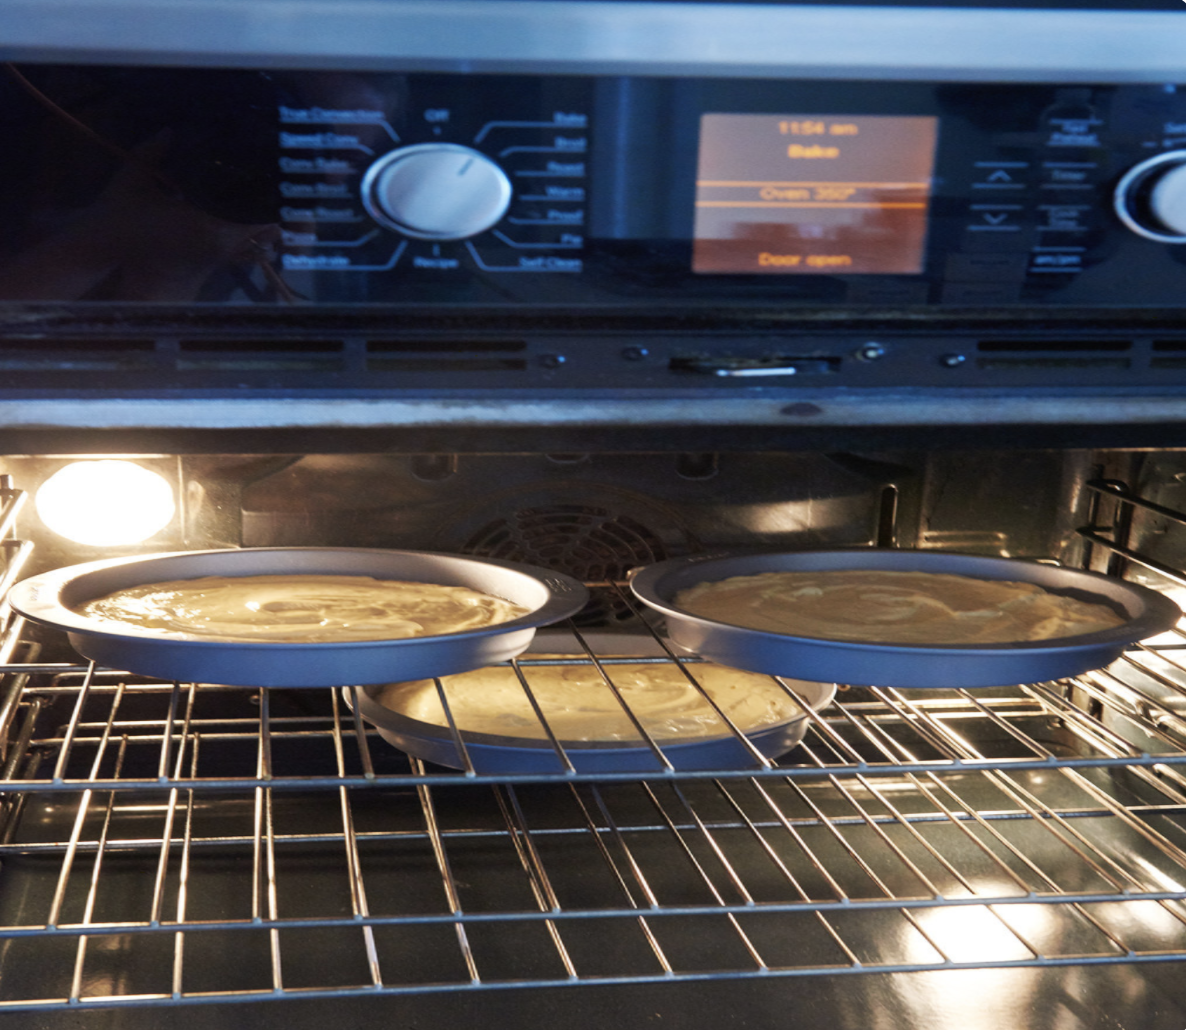 An oven with its door open, while three cakes are baking inside